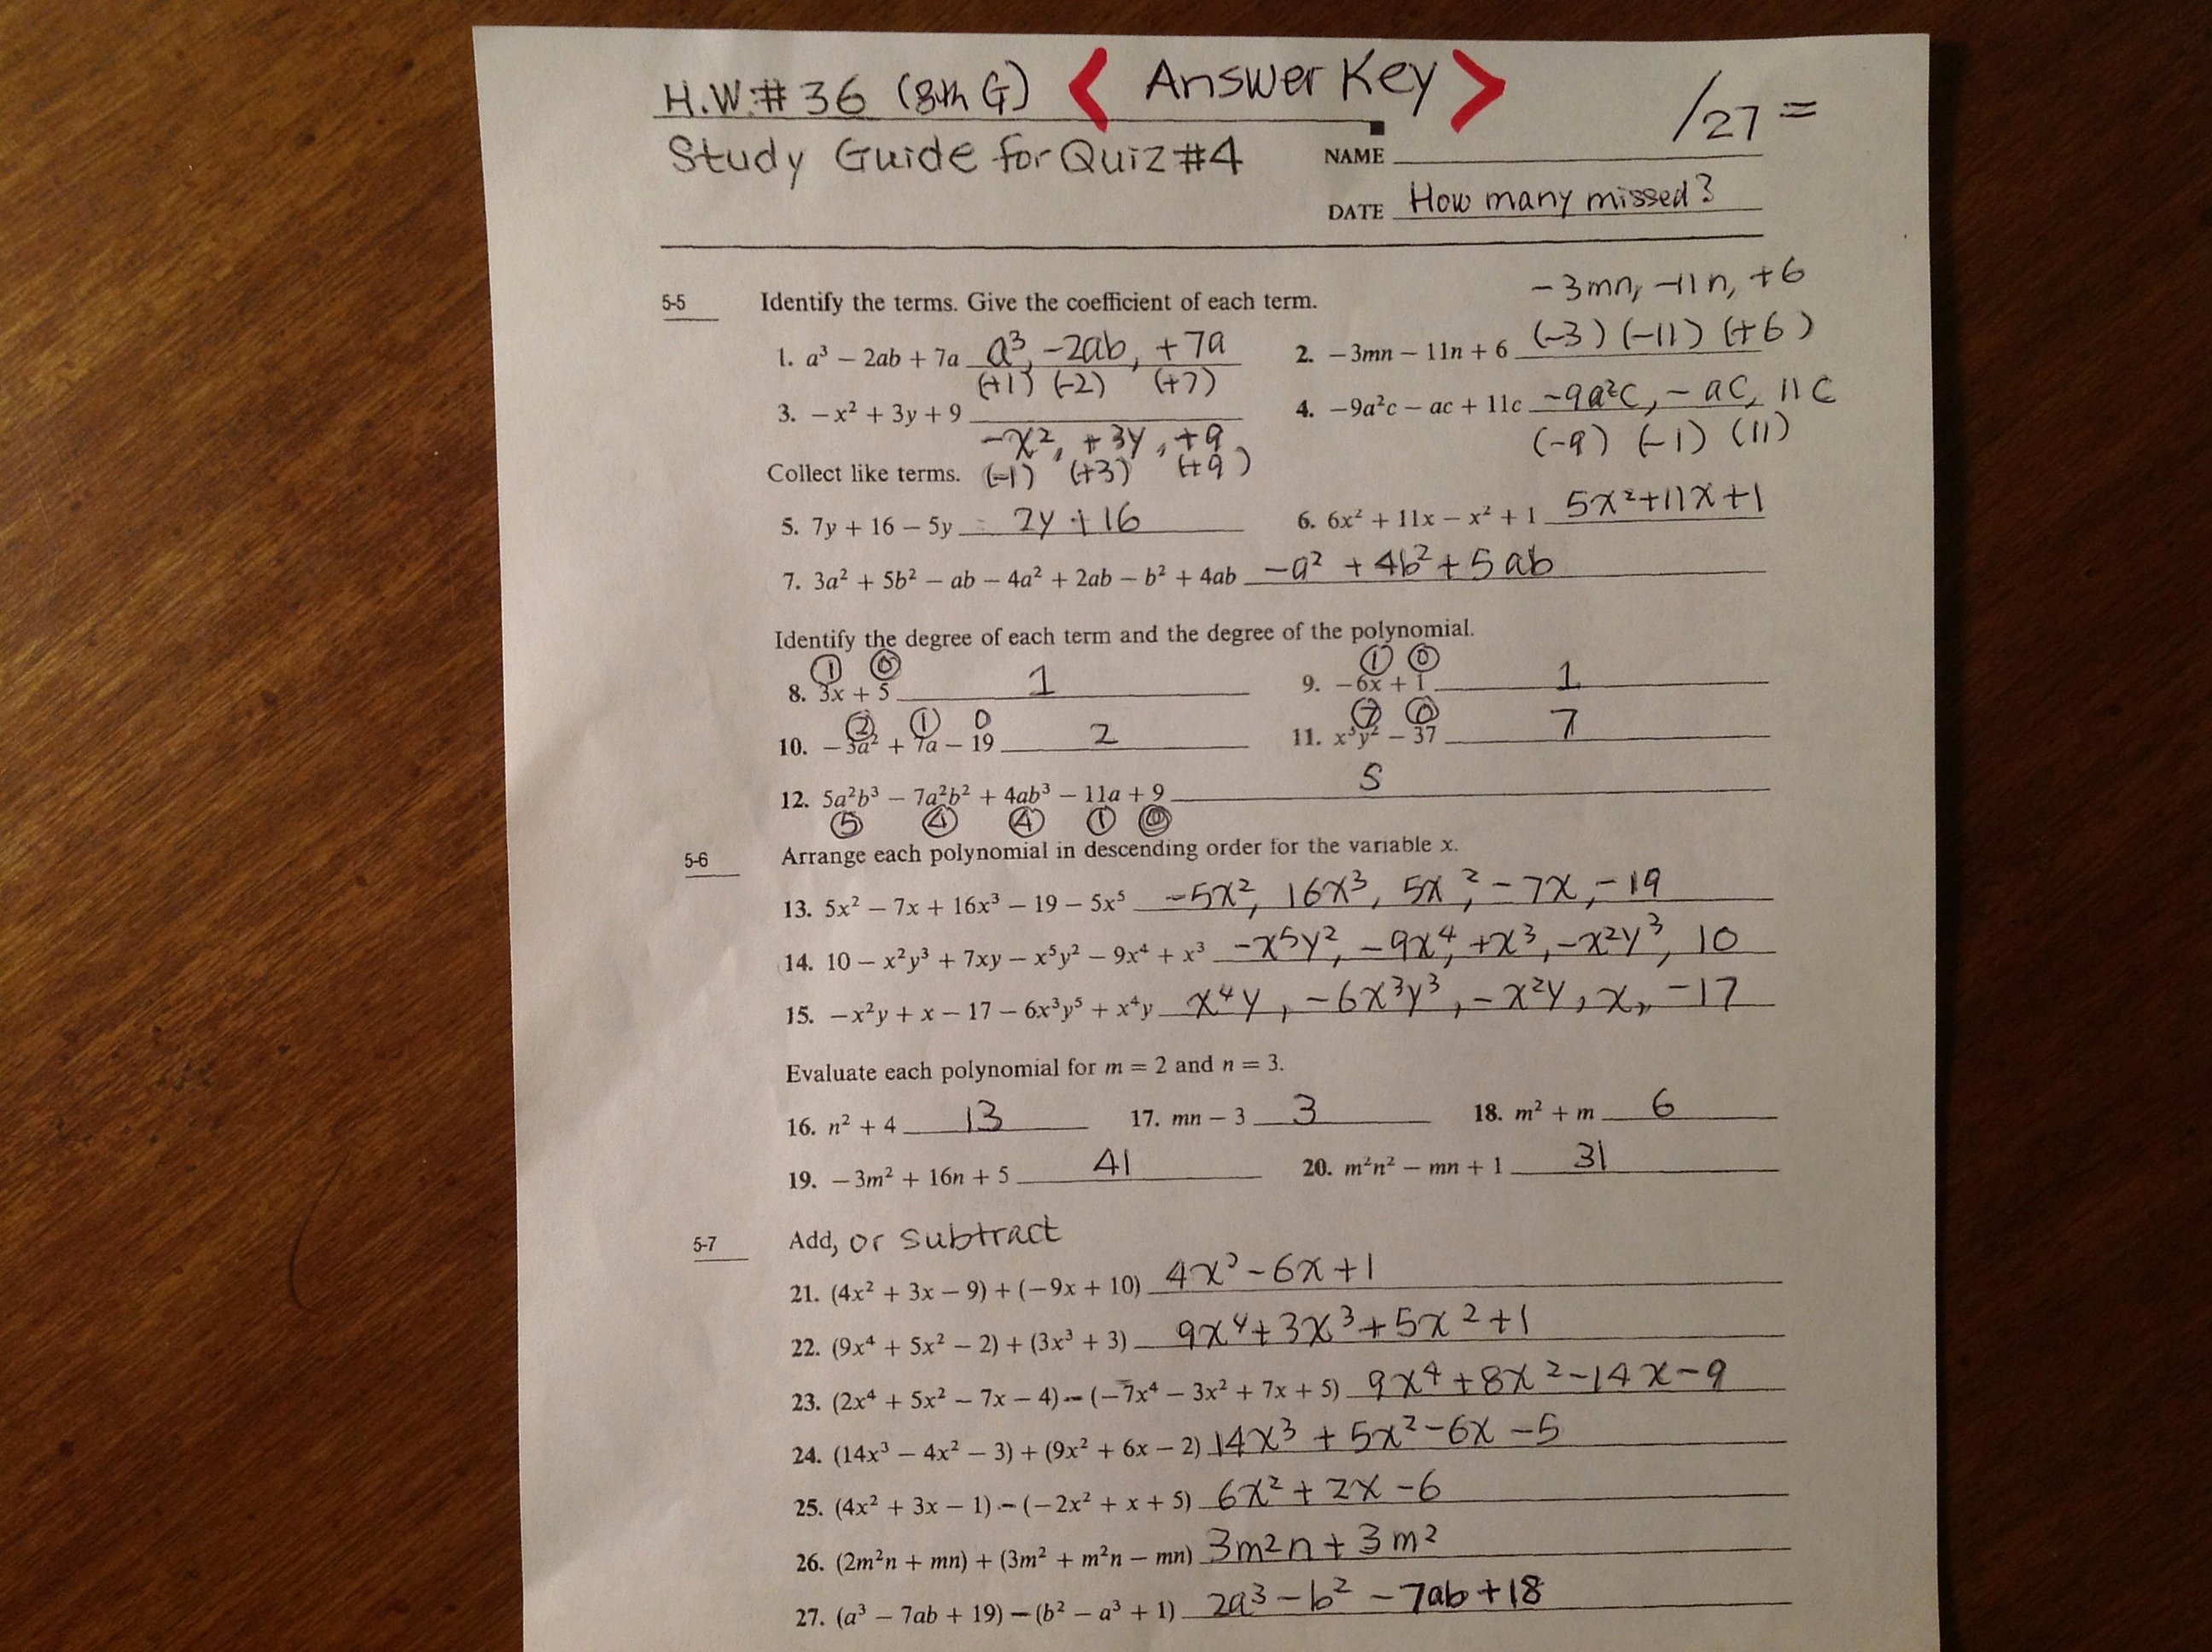 6.3 Biodiversity Worksheet Answers Elegant Mrs sorensen Math today S Lesson